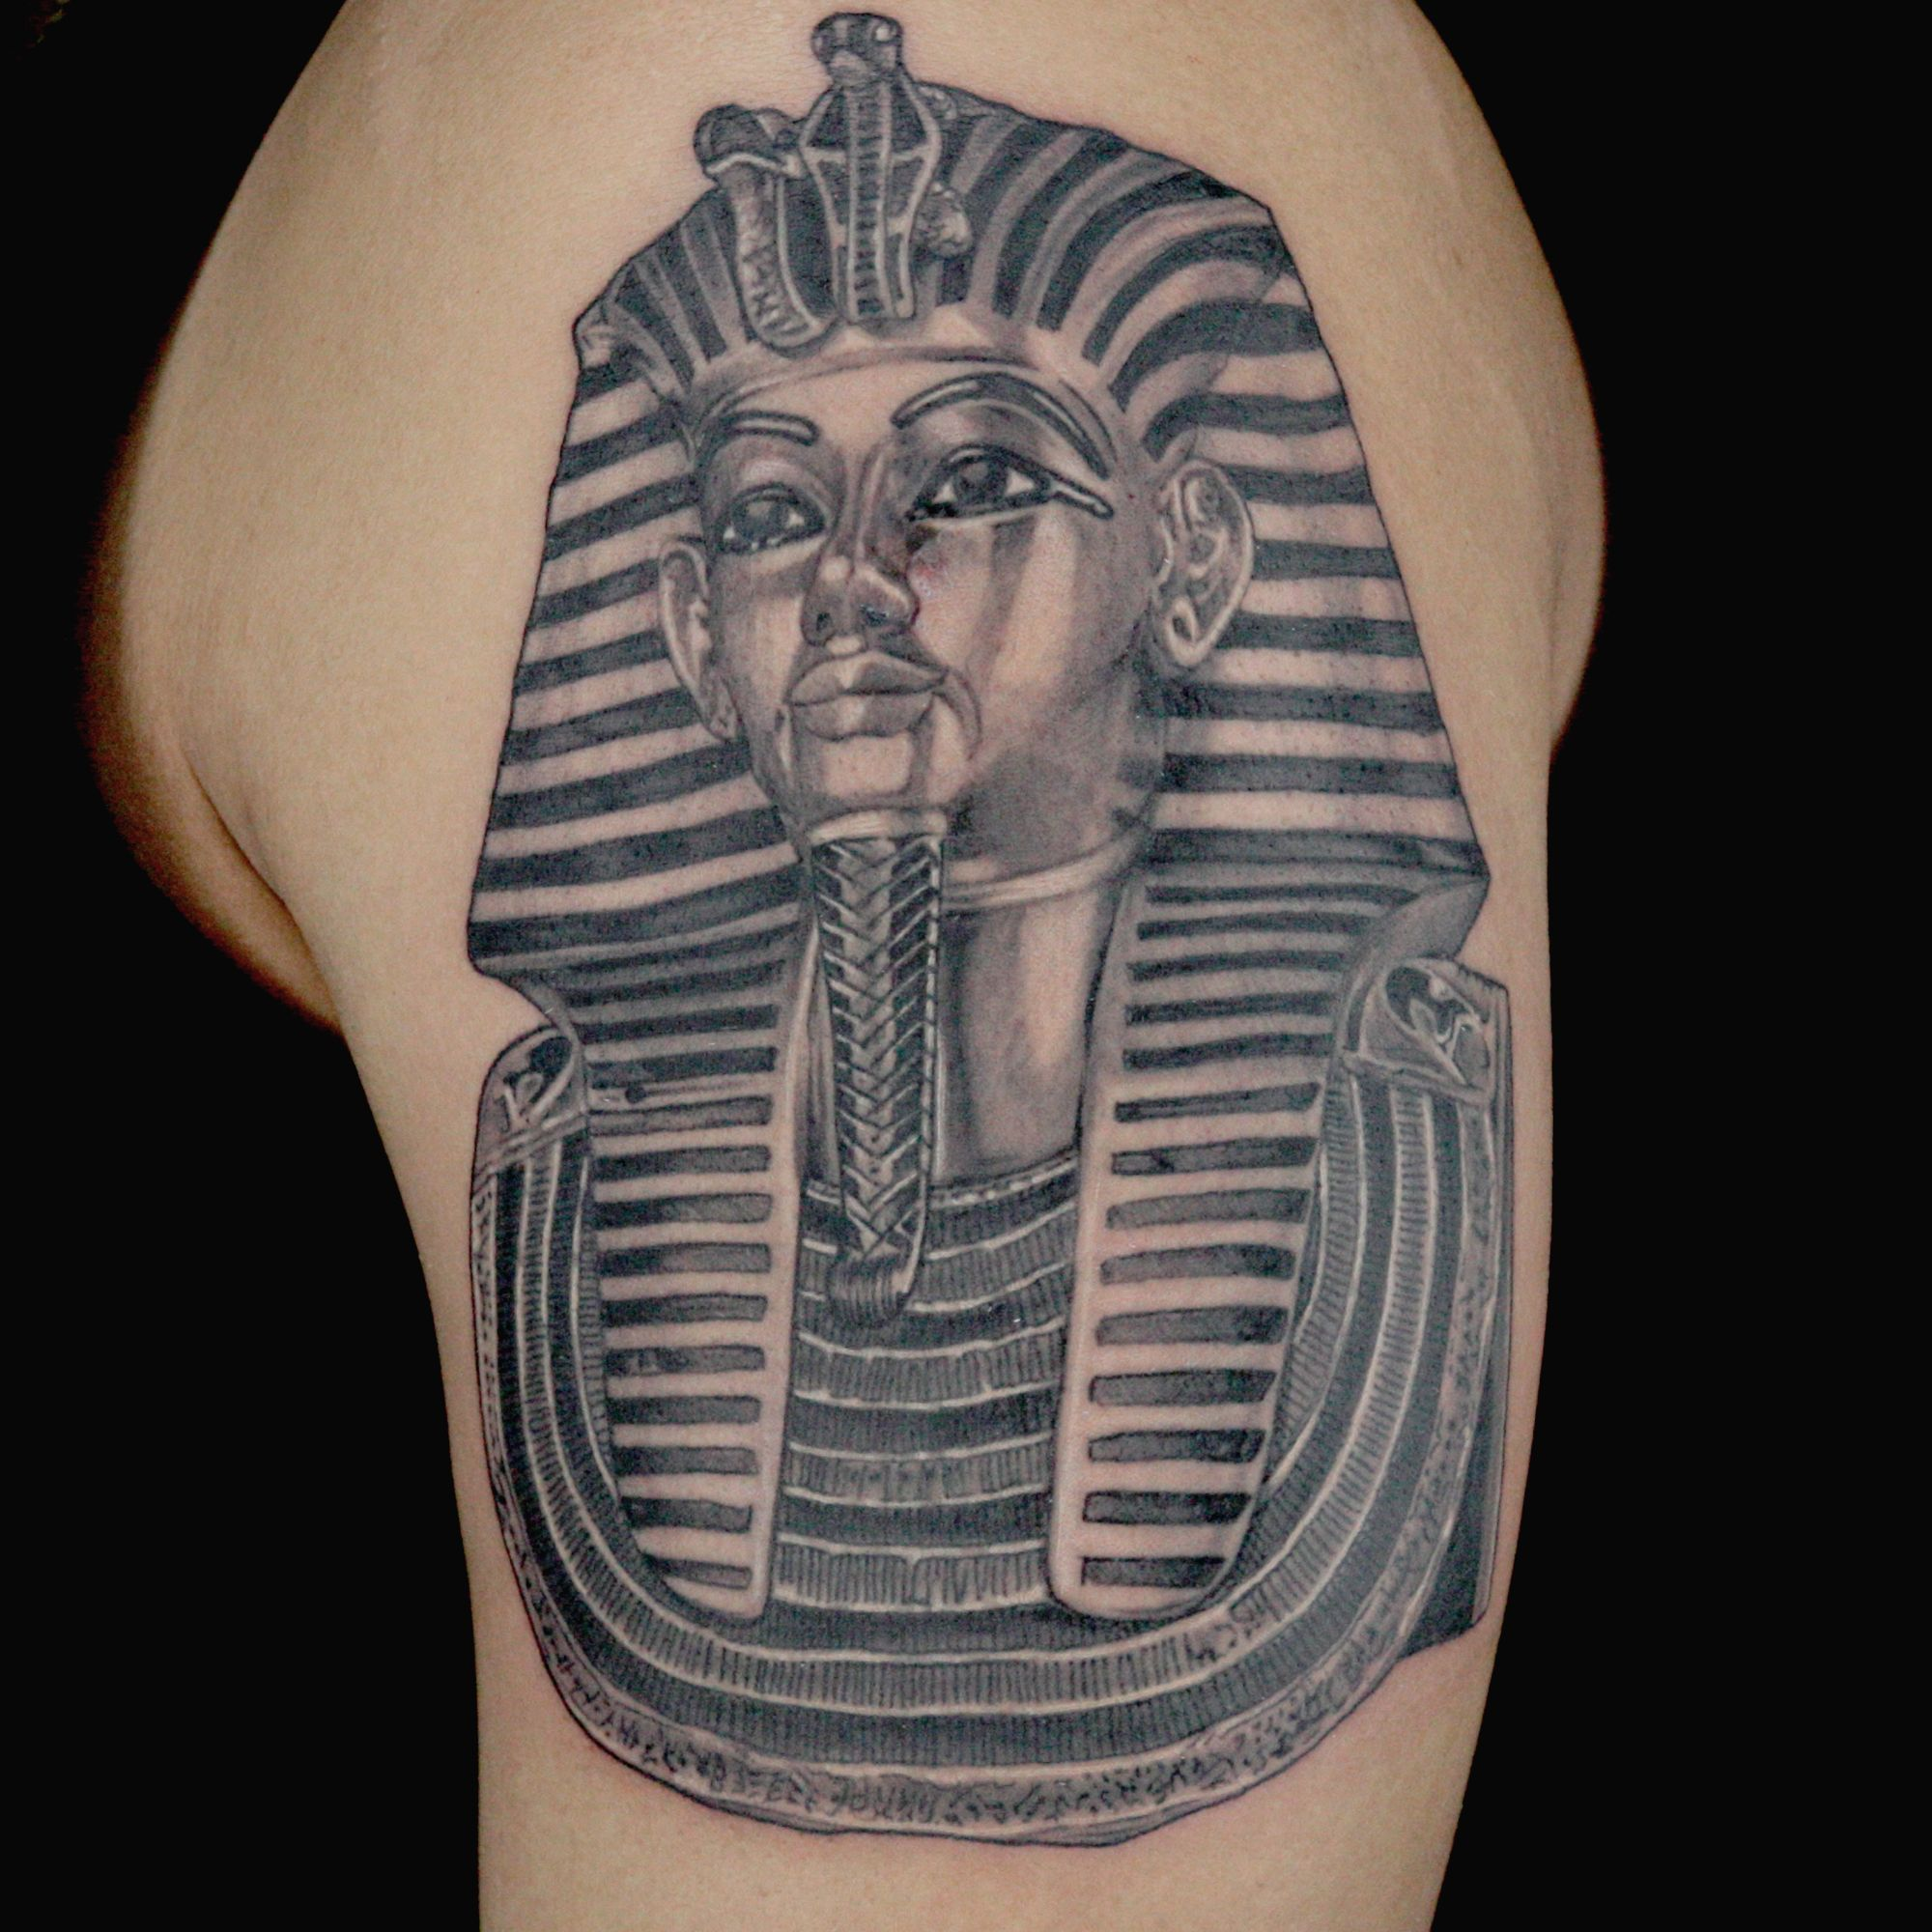 Airplane tattoo designs bodysstyle - Check Out This High Res Photo Of Big Ceeze S Tattoo From The Egyptian Episode Of Ink